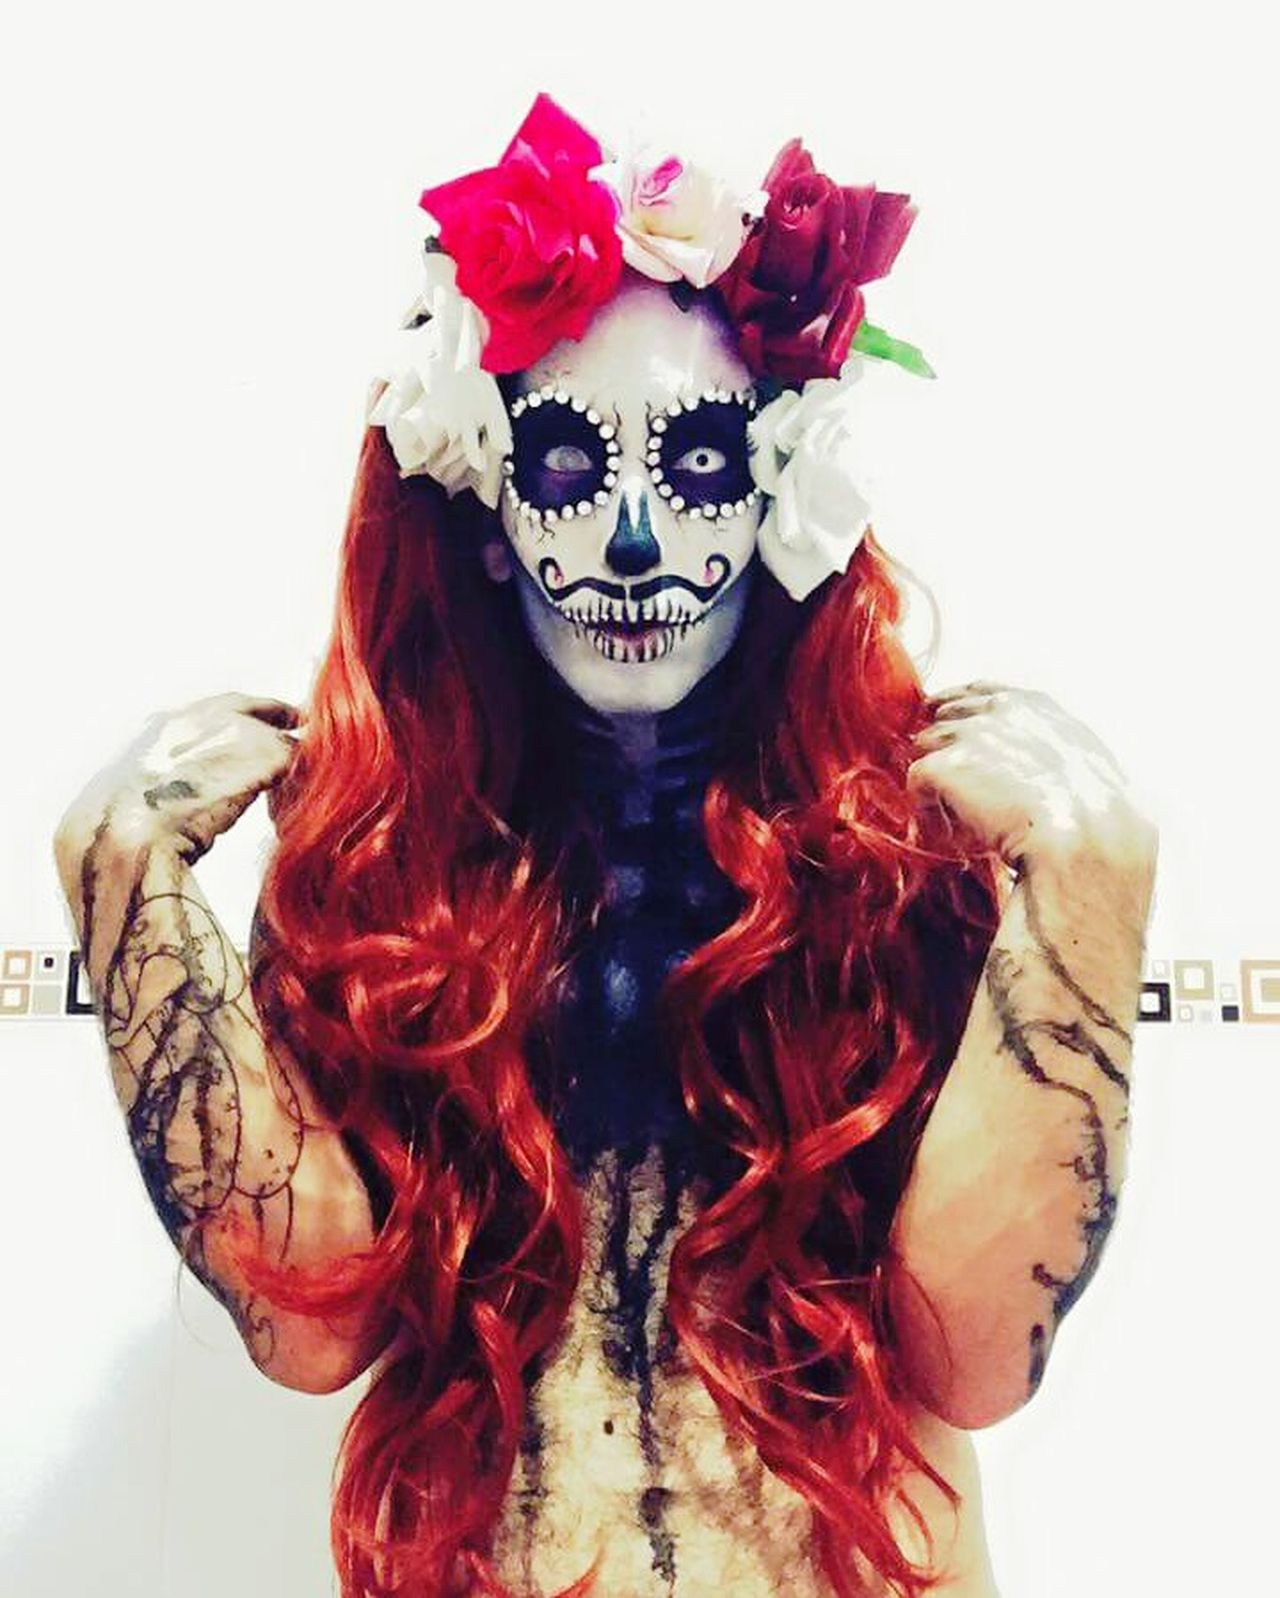 Blood Adult Adults Only One Person People Human Body Part One Man Only Skull Skullmakeup Rupaulsdragrace Automakeup Make-up Followme Maquillaje Painted Image Face Paint Kryolan Makeupartist